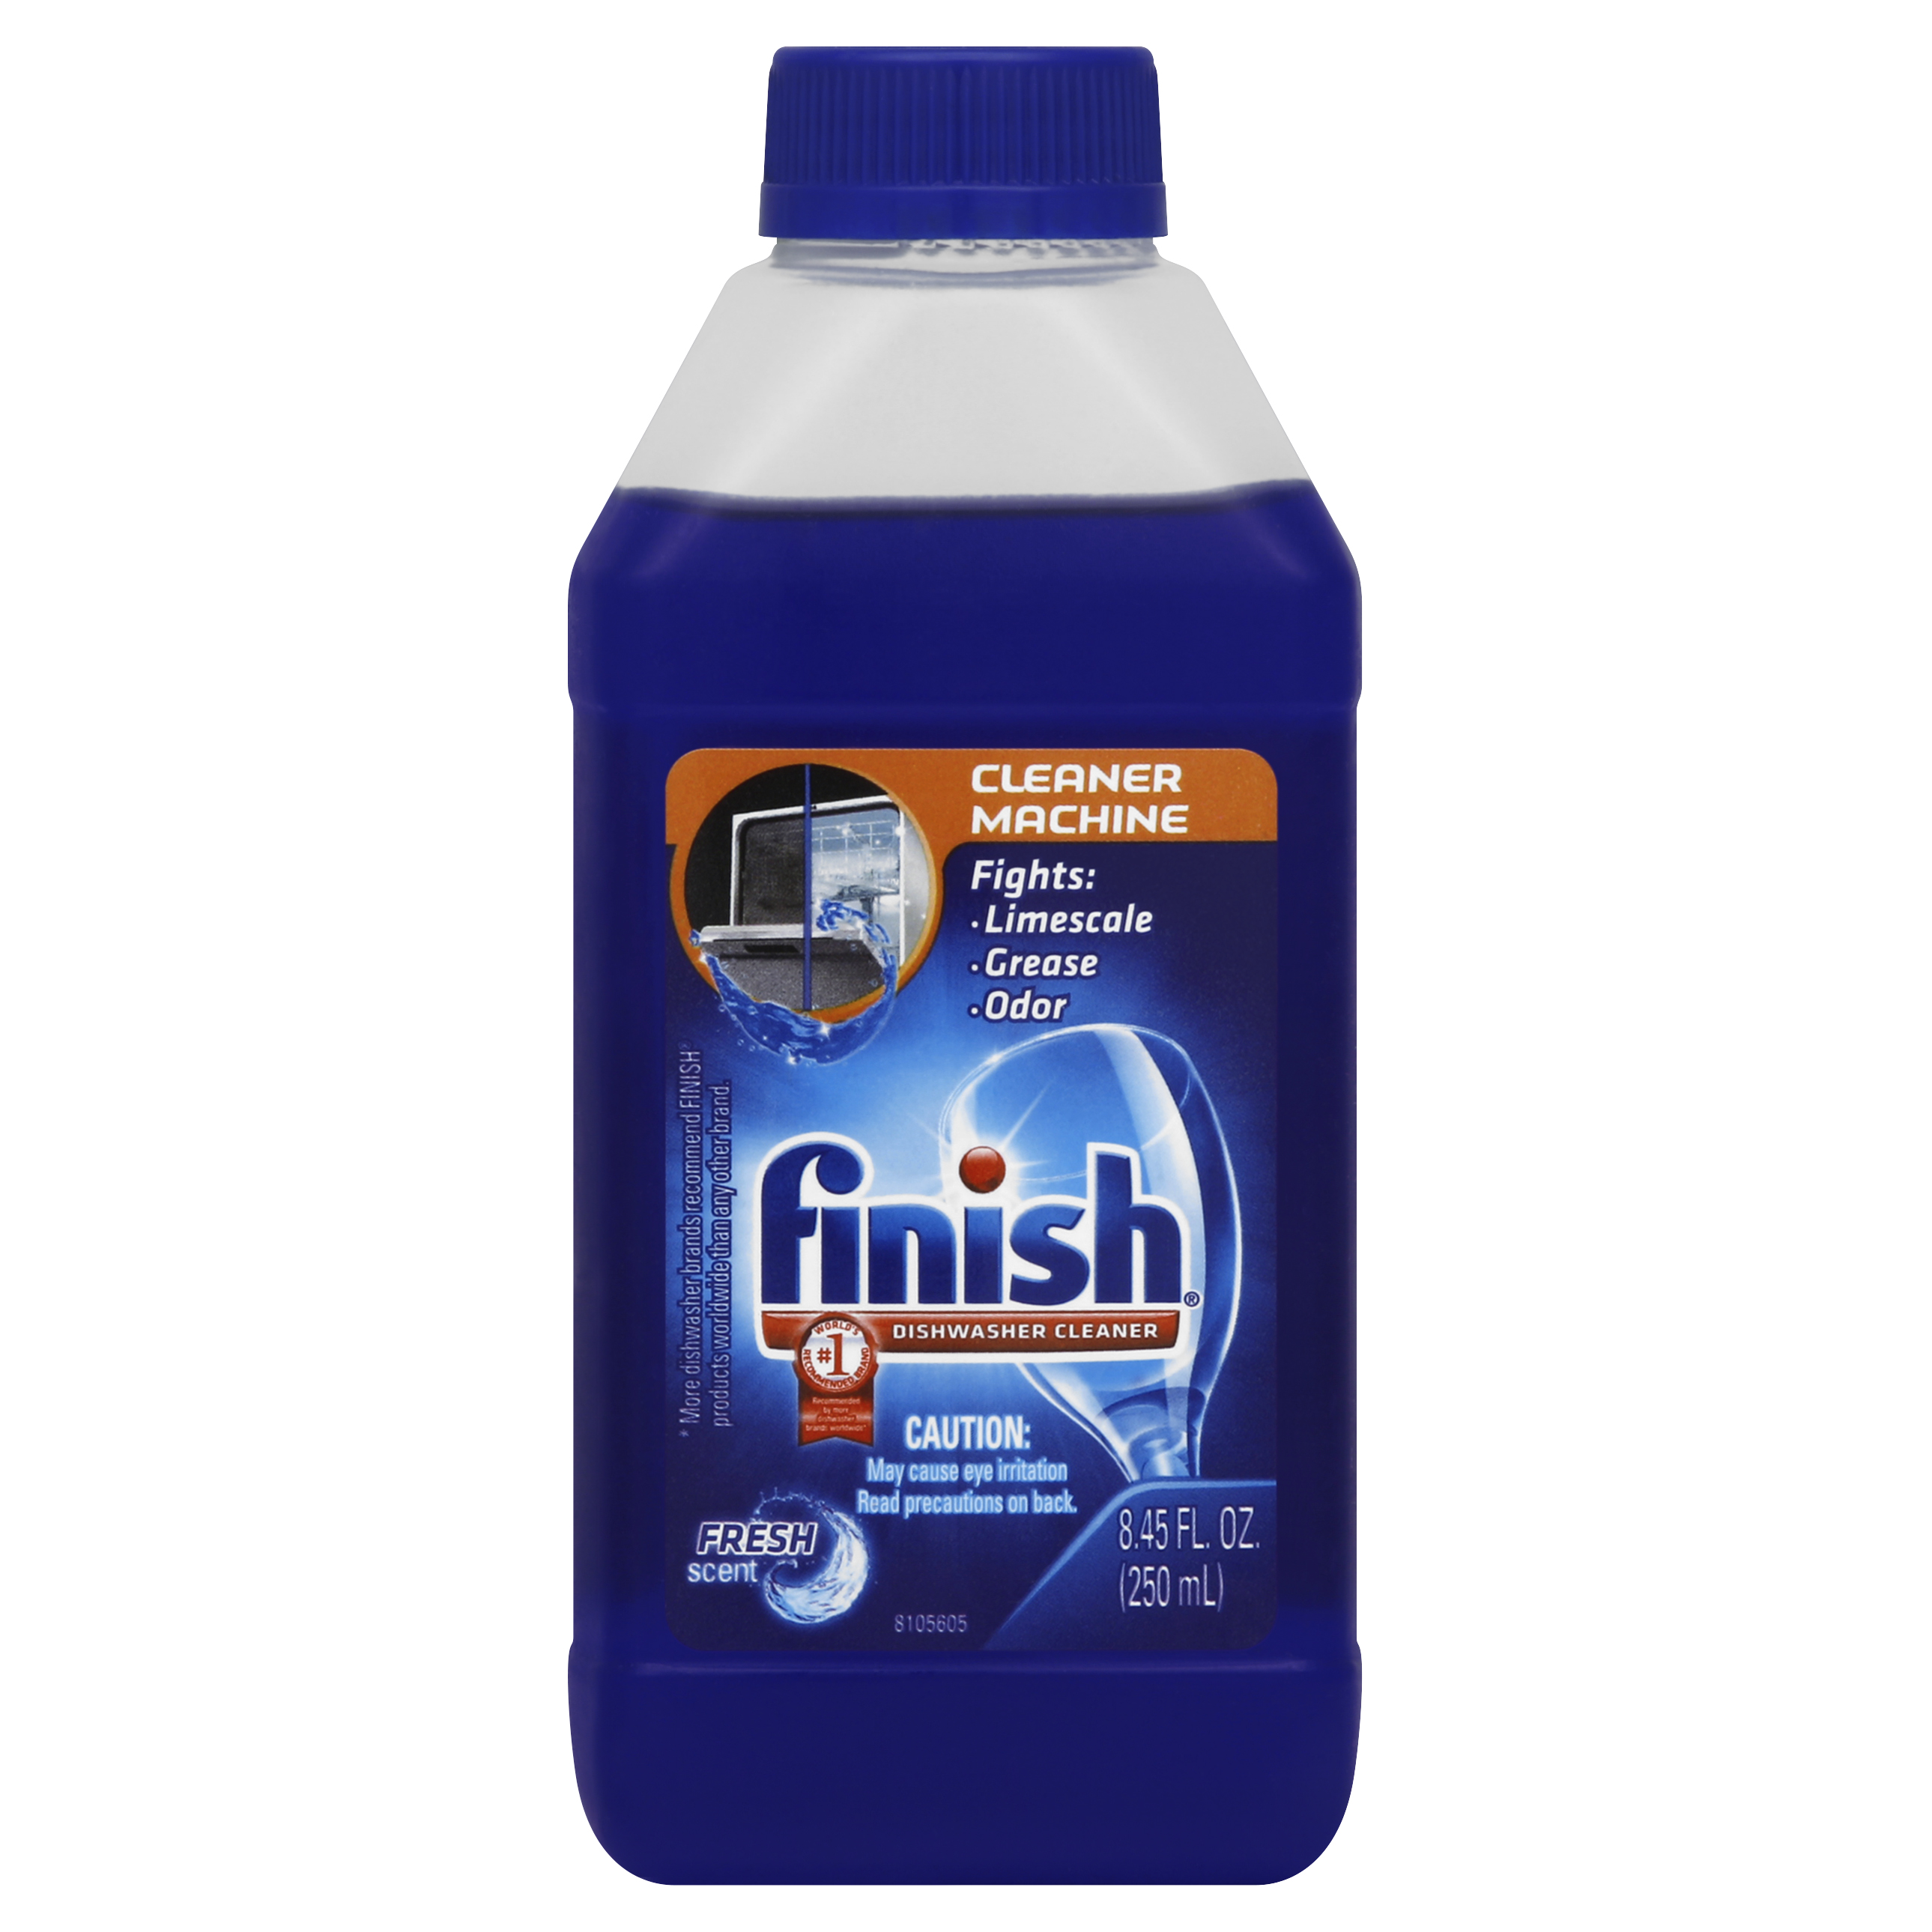 Finish Dishwasher Cleaner Solution Liquid, Liquid Fresh, 8.45 Ounces